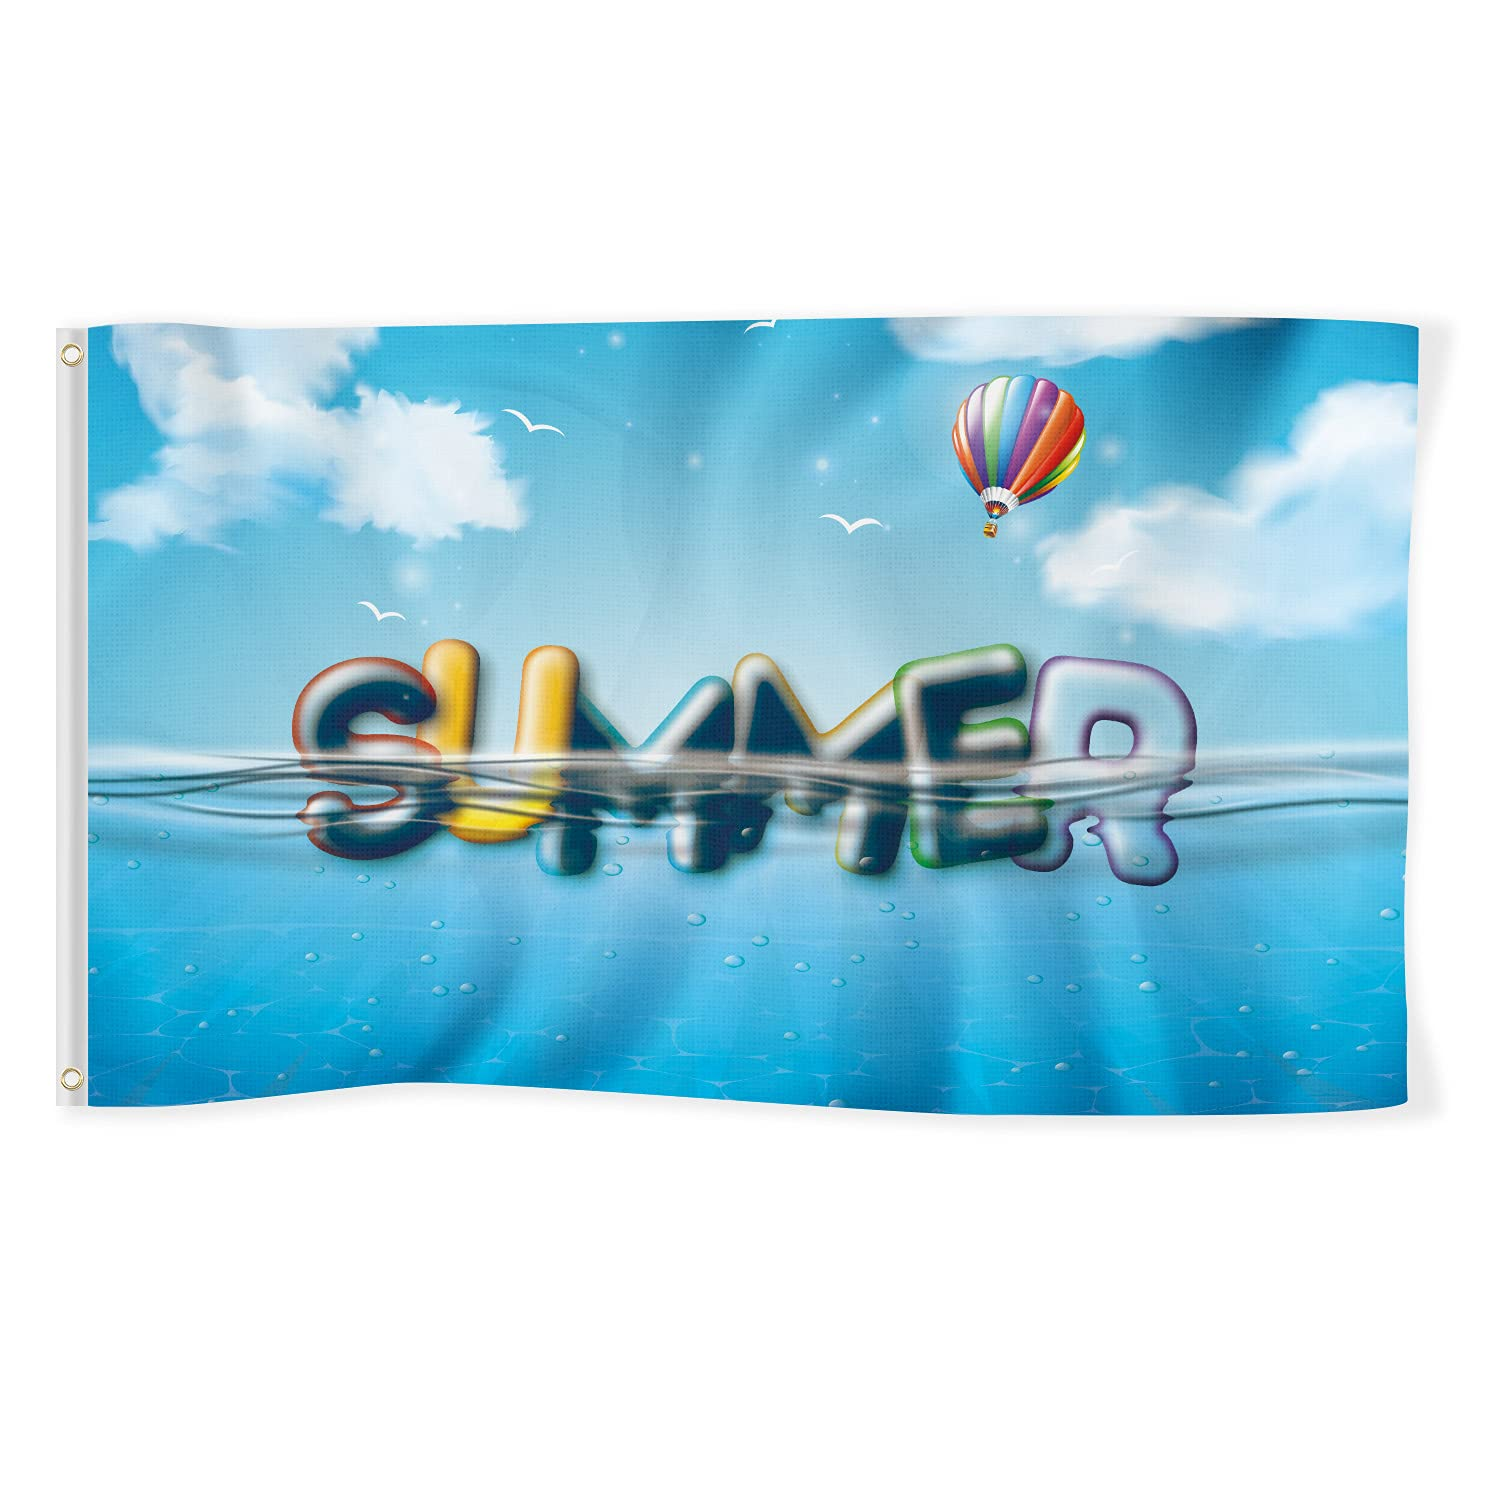 Hello Summer Flag 3x5 Ft Banner Decorations Swimming Pool Duck Swim Ring Yard Sign Party Supplies Holiday Decoration Cool Funny Flags Welcome Double Stitched with Brass Grommets House Outdoor Garden Dorm Room Farmhouse Wall Door Travel Man Cave Indoor